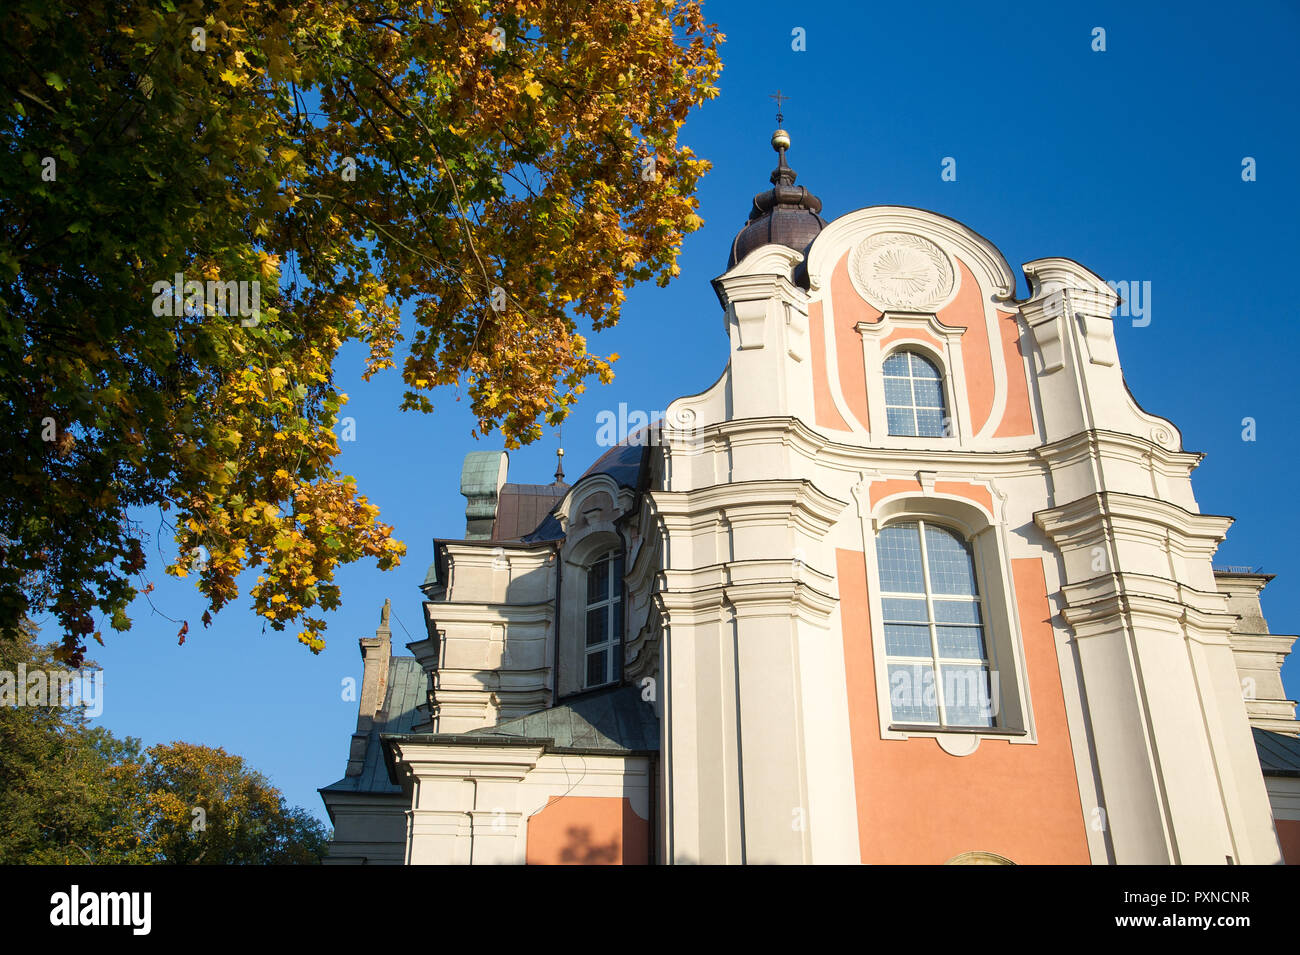 Former Cistercian Abbey in Lad, Poland. October 12th 2018 © Wojciech Strozyk / Alamy Stock Photo - Stock Image